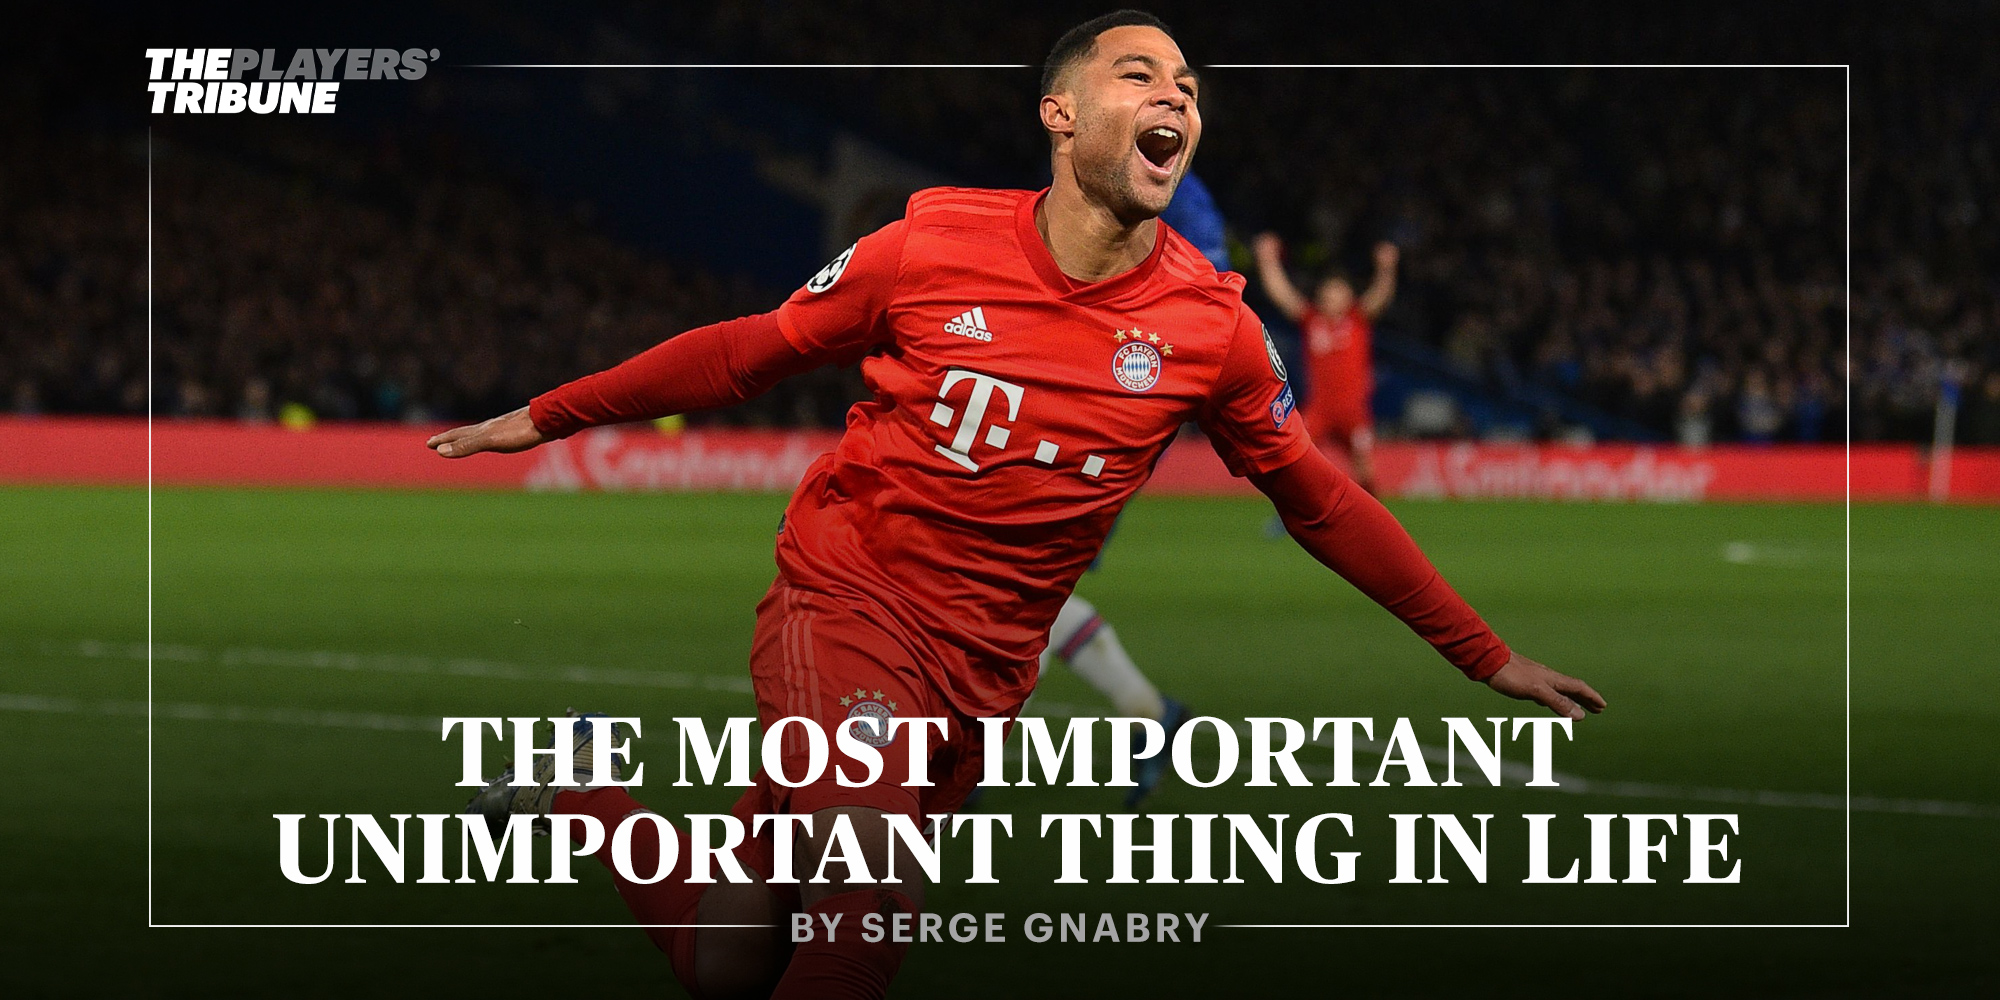 The Most Important Unimportant Thing in Life | By Serge Gnabry